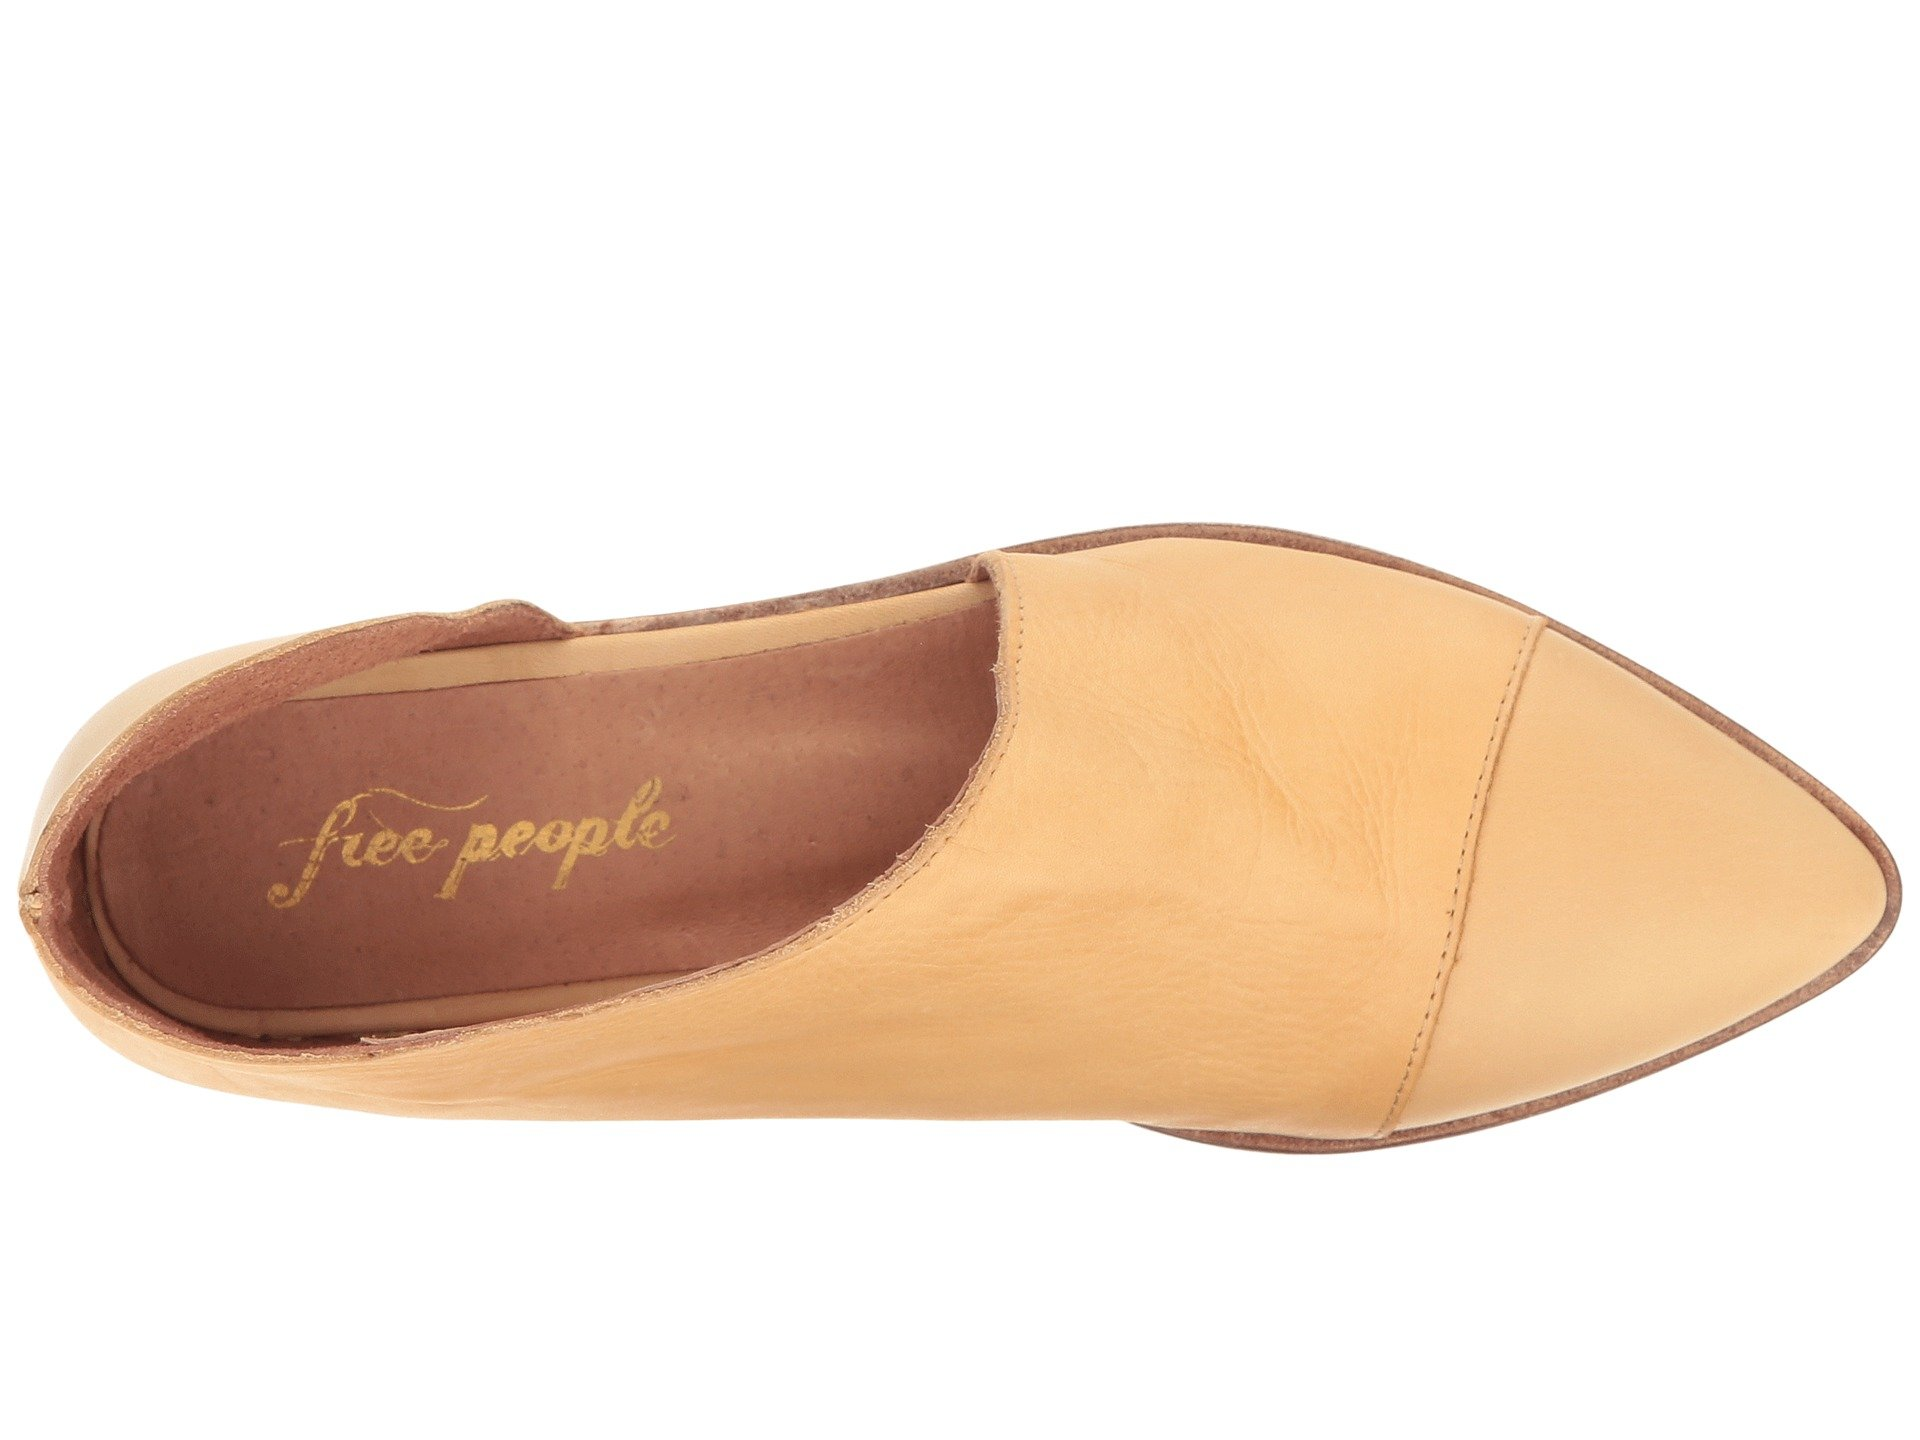 Free People Royale Flat (38 M EU) by Free People (Image #9)